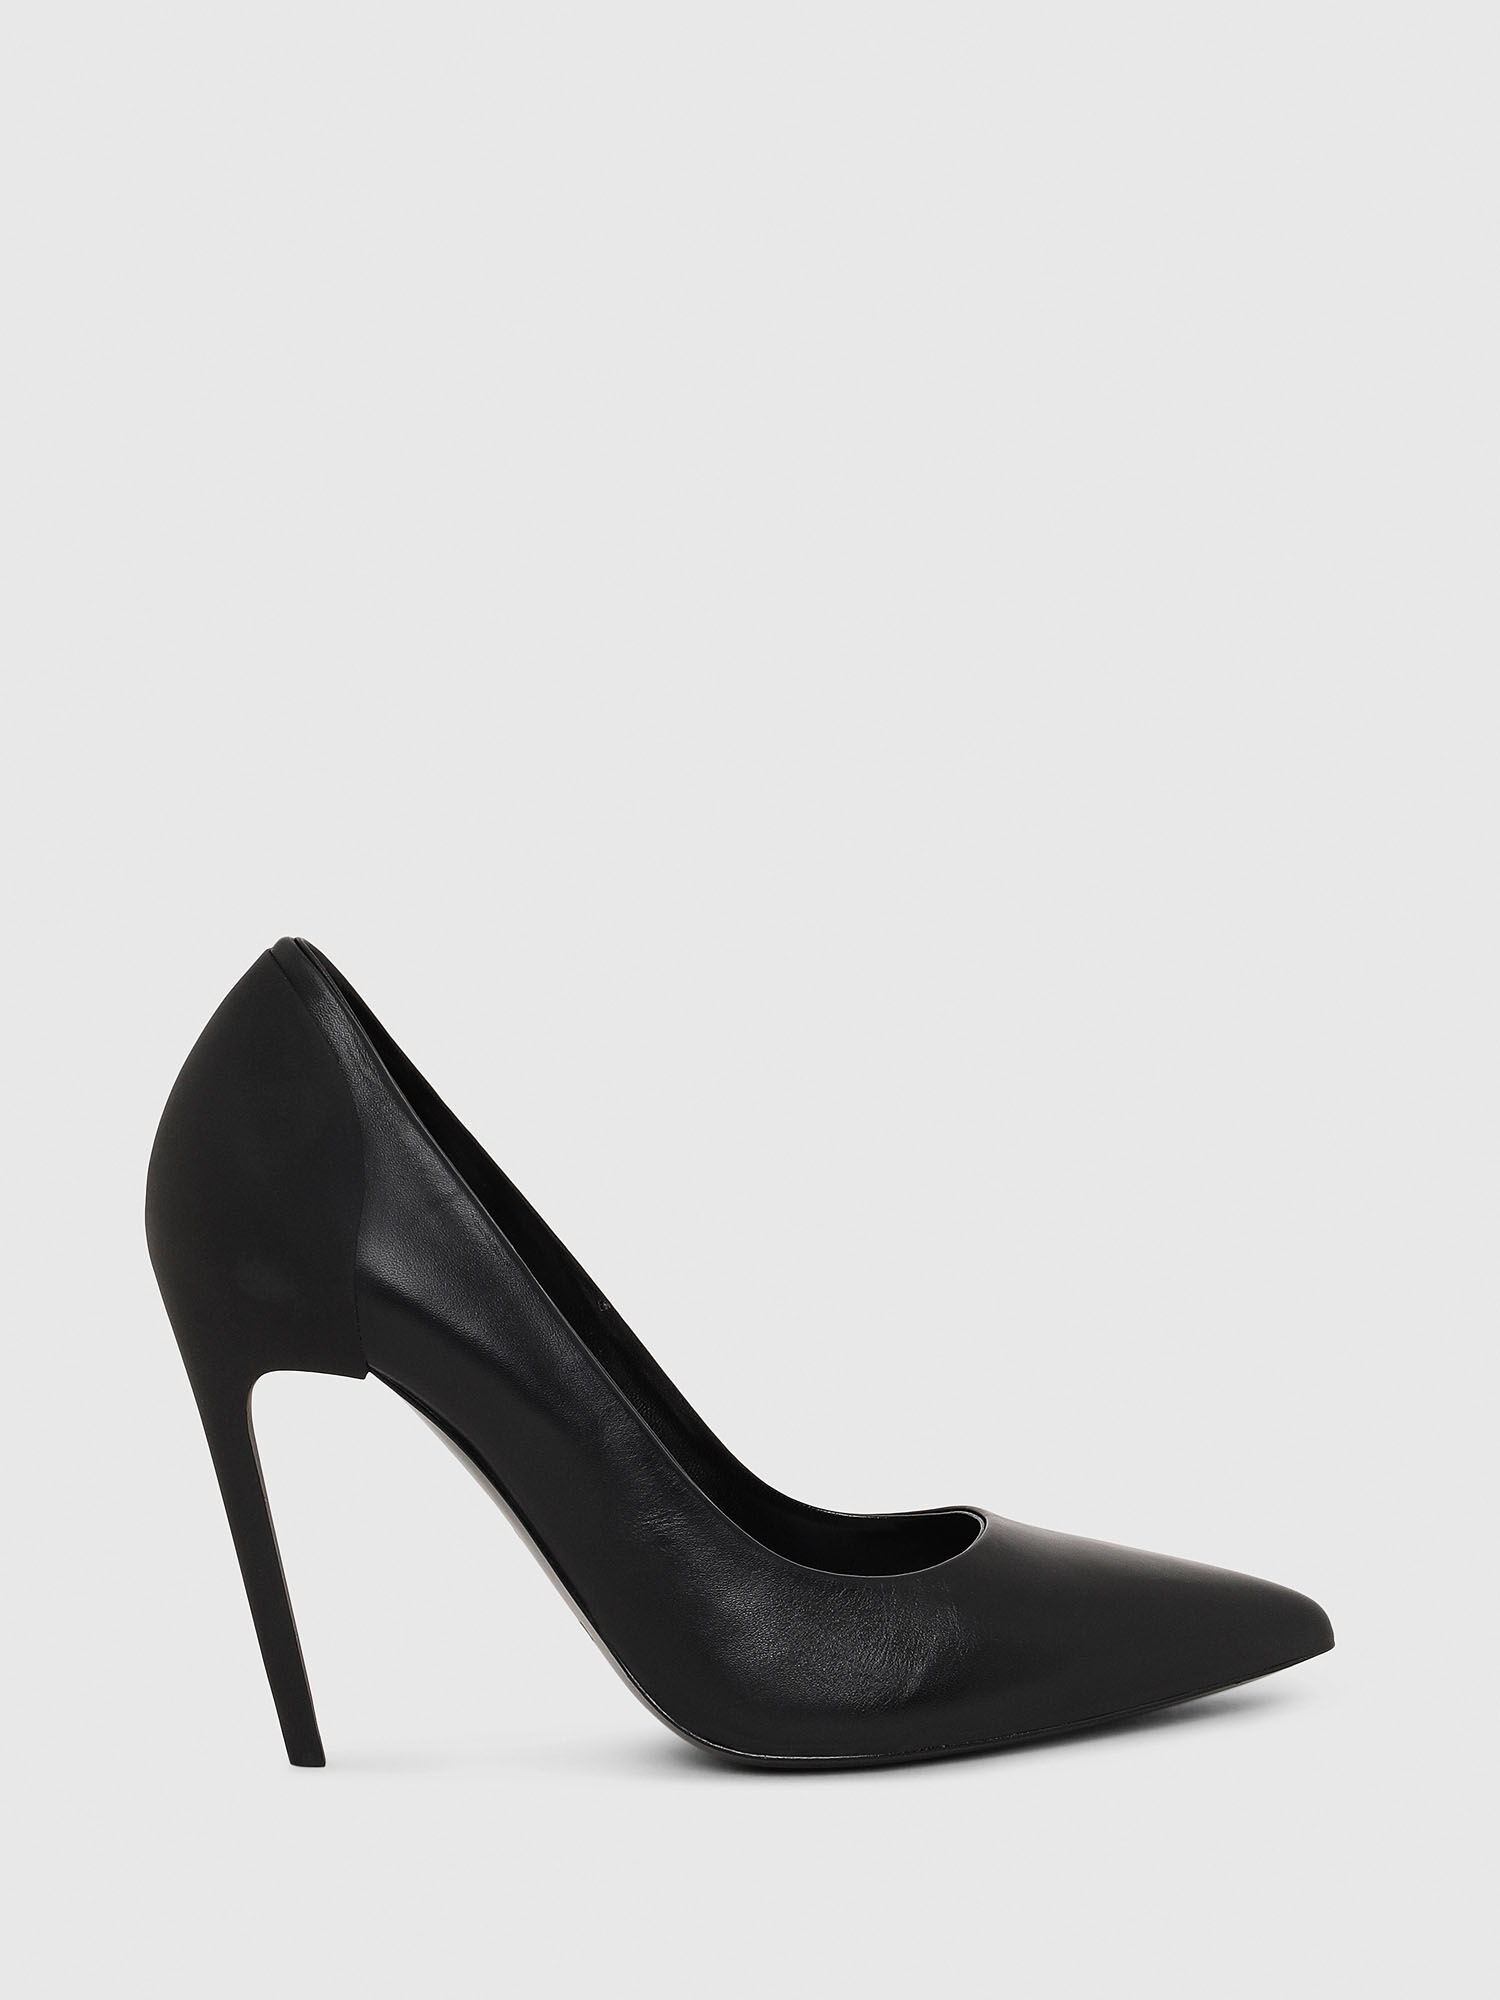 Chaussures With Braves À On Talon FemmeGo The u3Tl1JKcF